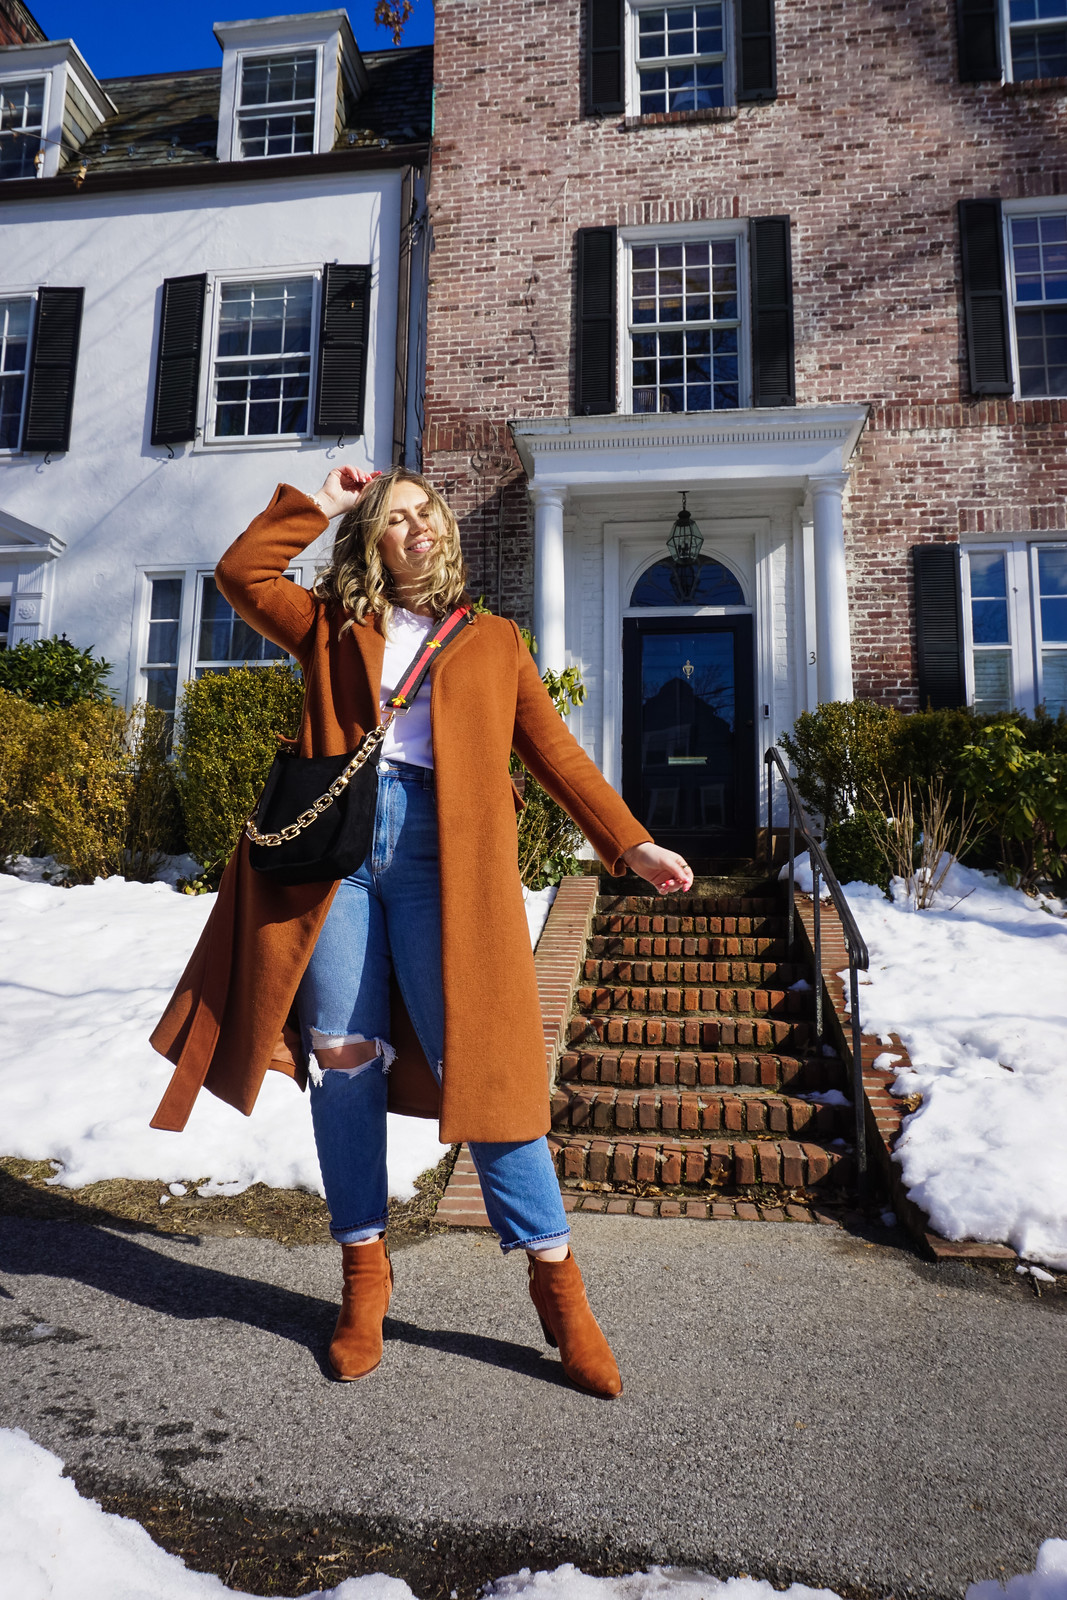 Ahdorned Bags | Winter Outfits Casual | Aesthetic Outfits | Gold Chain Bag | Rust Winter Coat | Ahdorned: The Handbag Company You Need to Know About